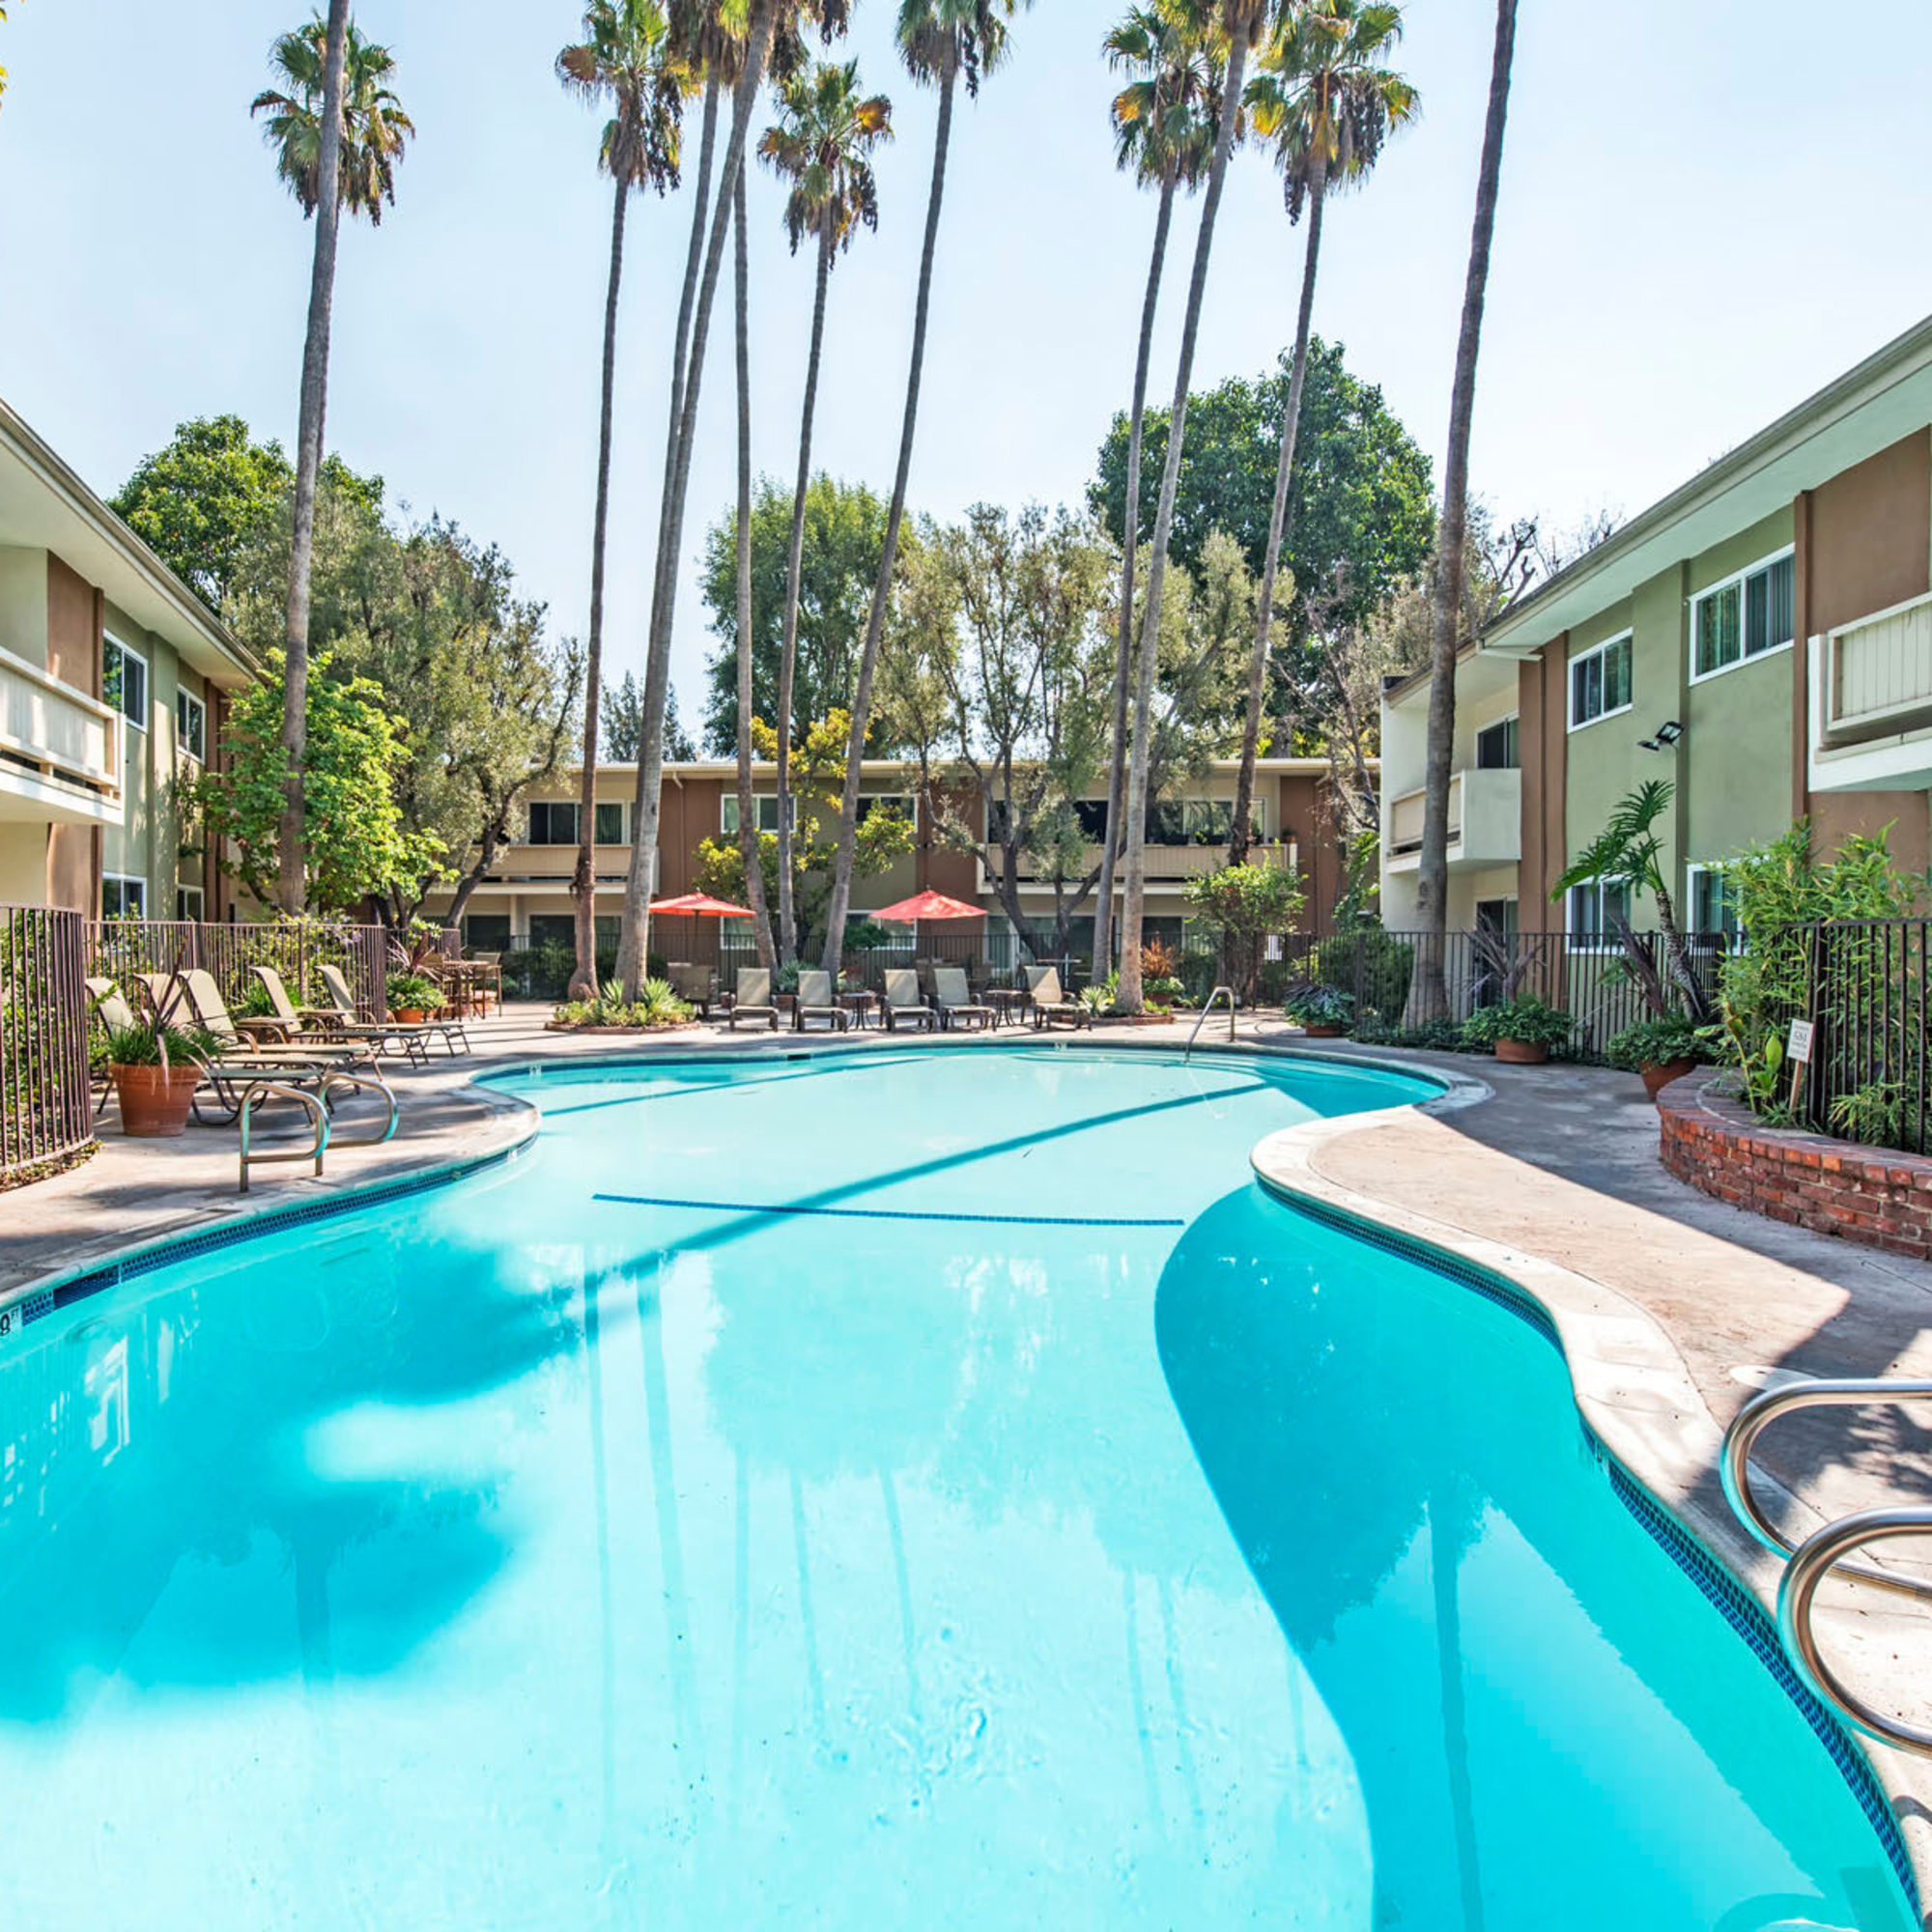 Resort-style swimming pool flanked by palm trees on a beautiful day at Villa Vicente in Los Angeles, California